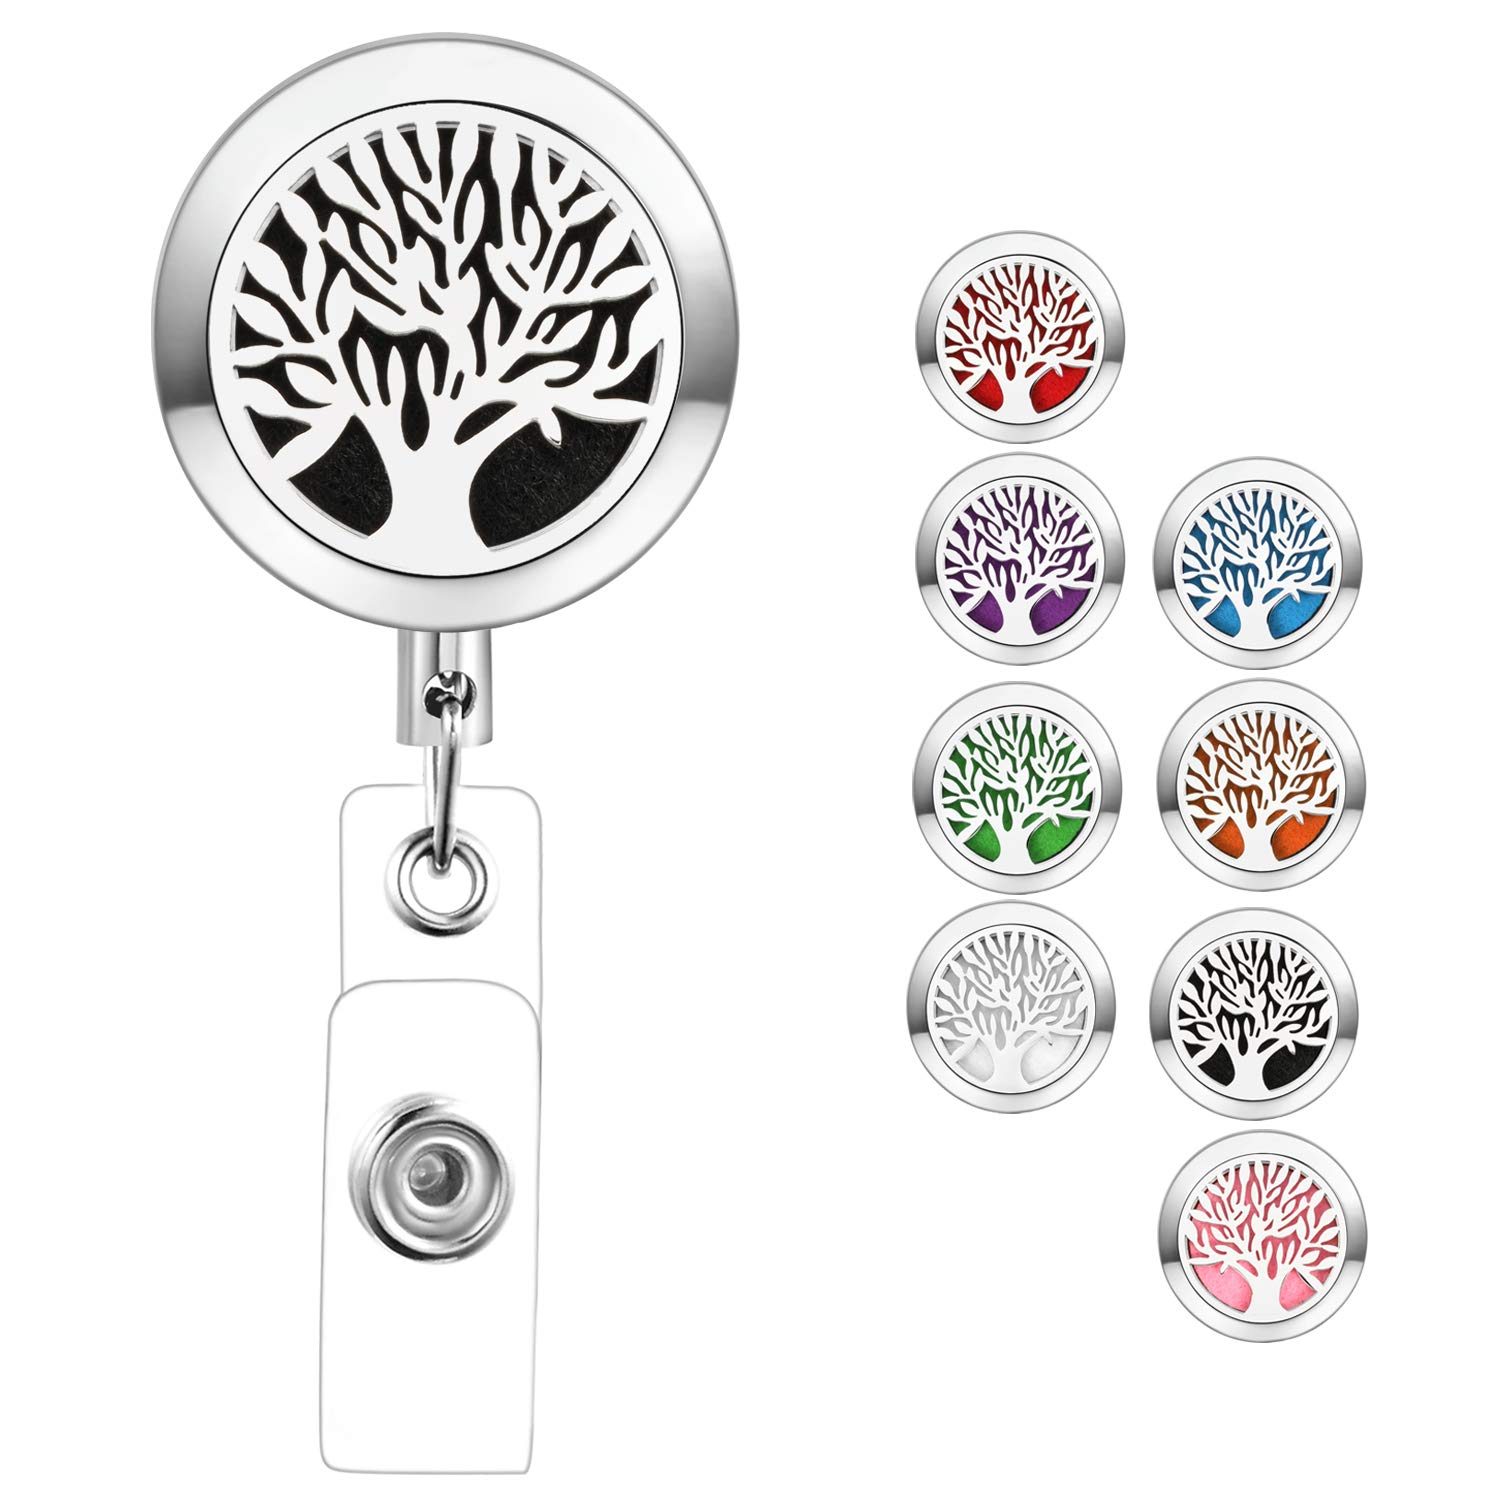 Retractable Badge Holder with Essential Oil Diffuser Aromatherapy Heavy Duty Badge Reels Cute ID Card Holder Clip for Nurse Teacher Tree of Life by SAM & LORI